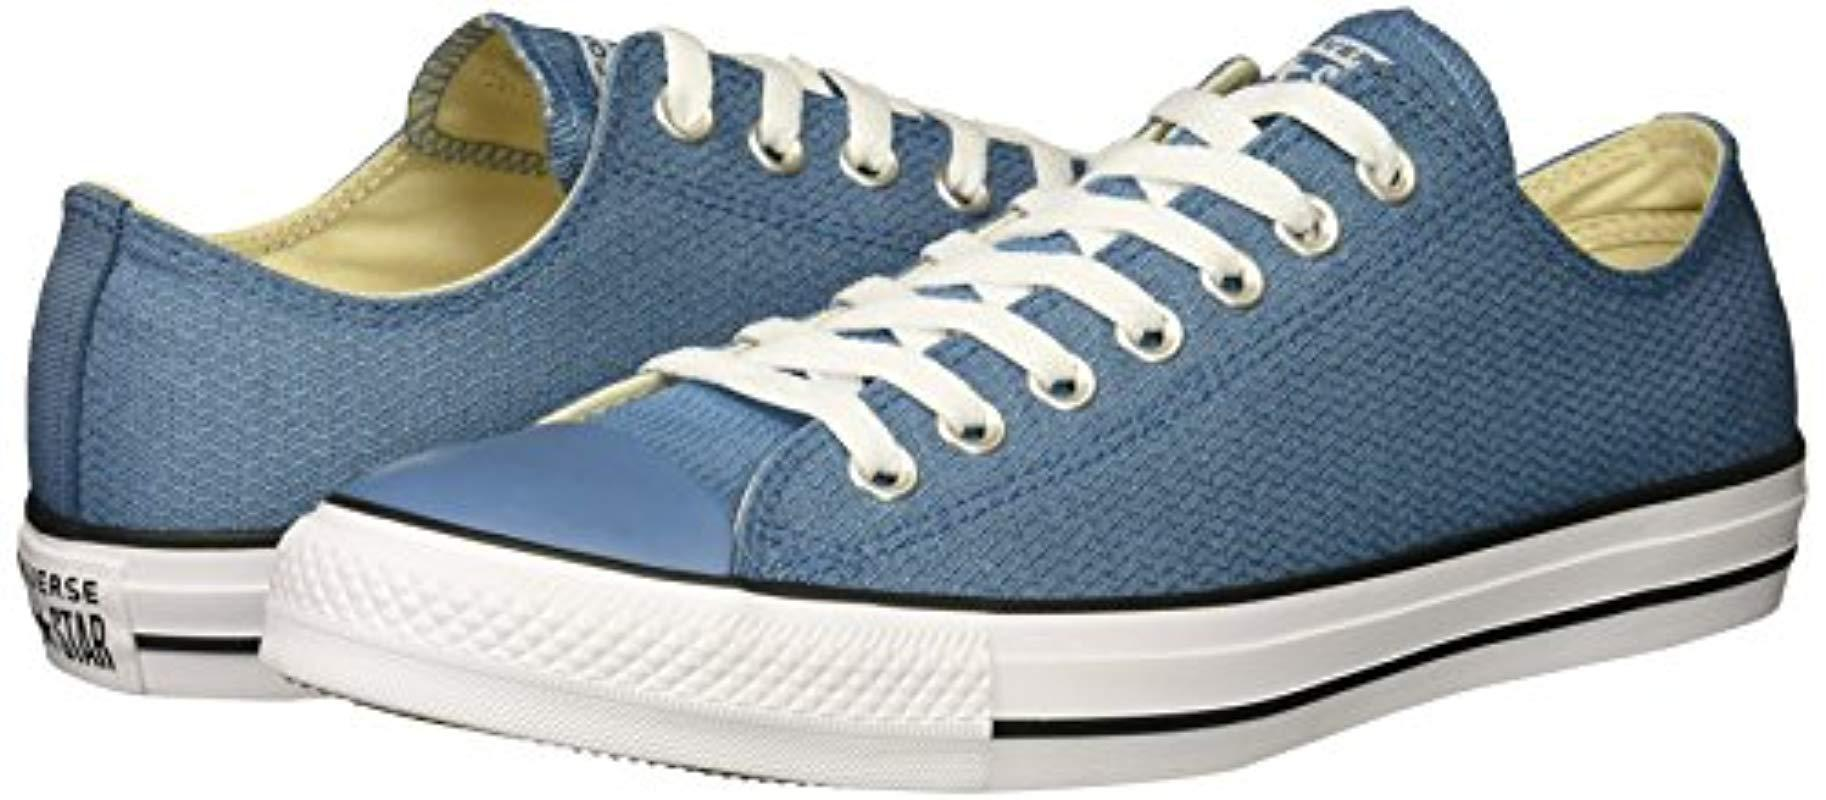 cc795380d980 Lyst - Converse Chuck Taylor All Star Basketweave Low Top Sneaker in Blue  for Men - Save 18%